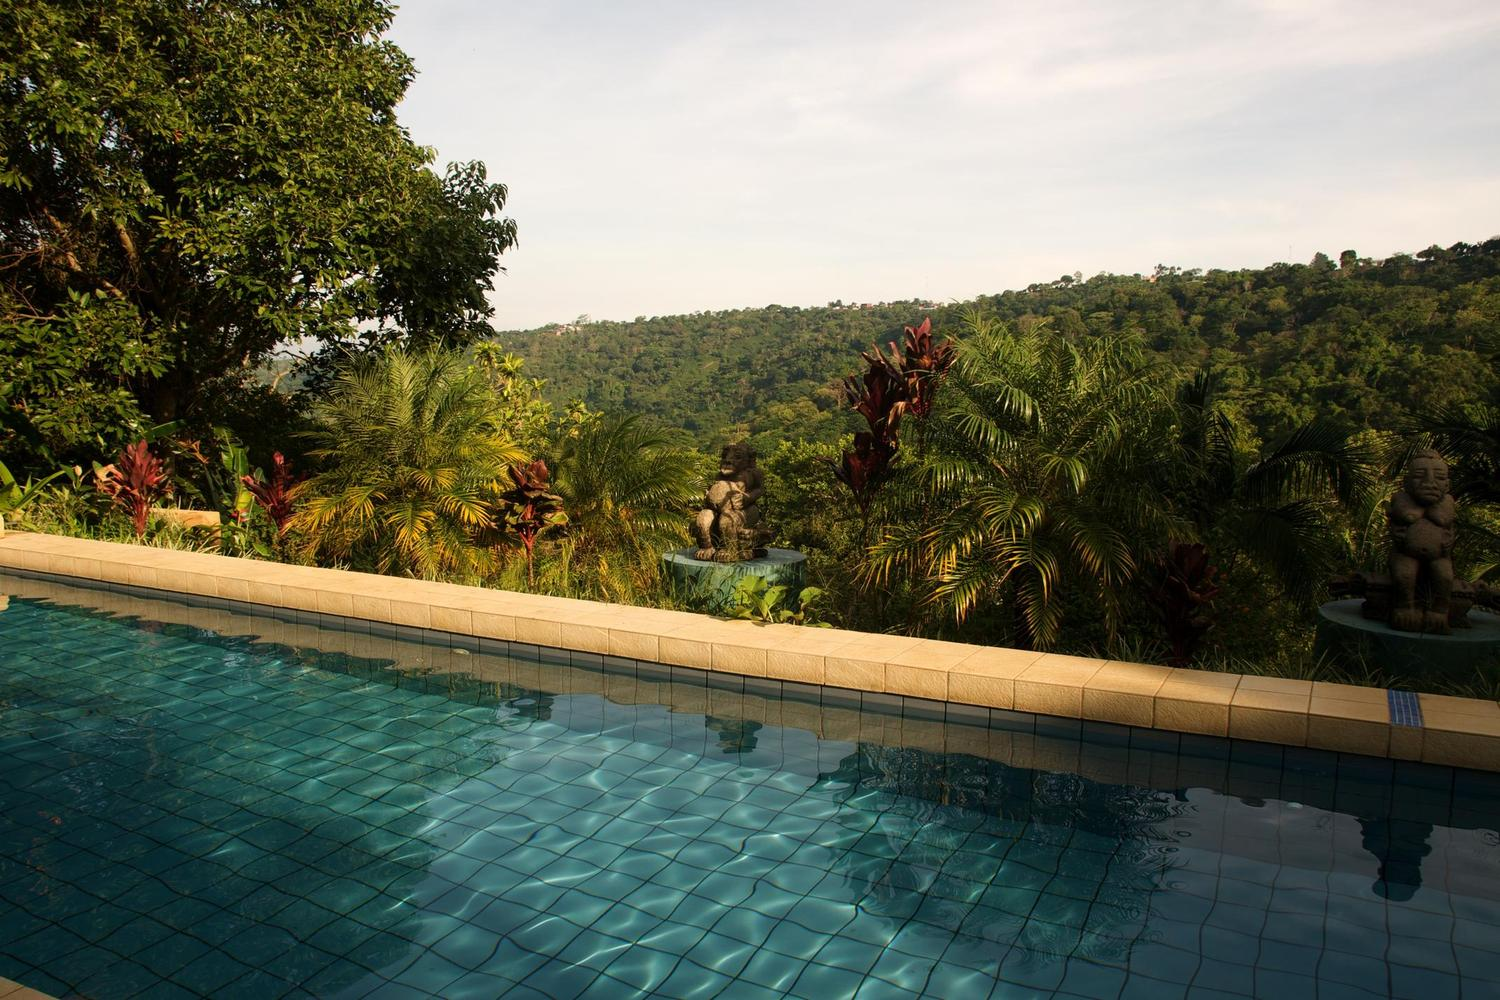 One of three pools at the Xandari Plantation hotel near San José